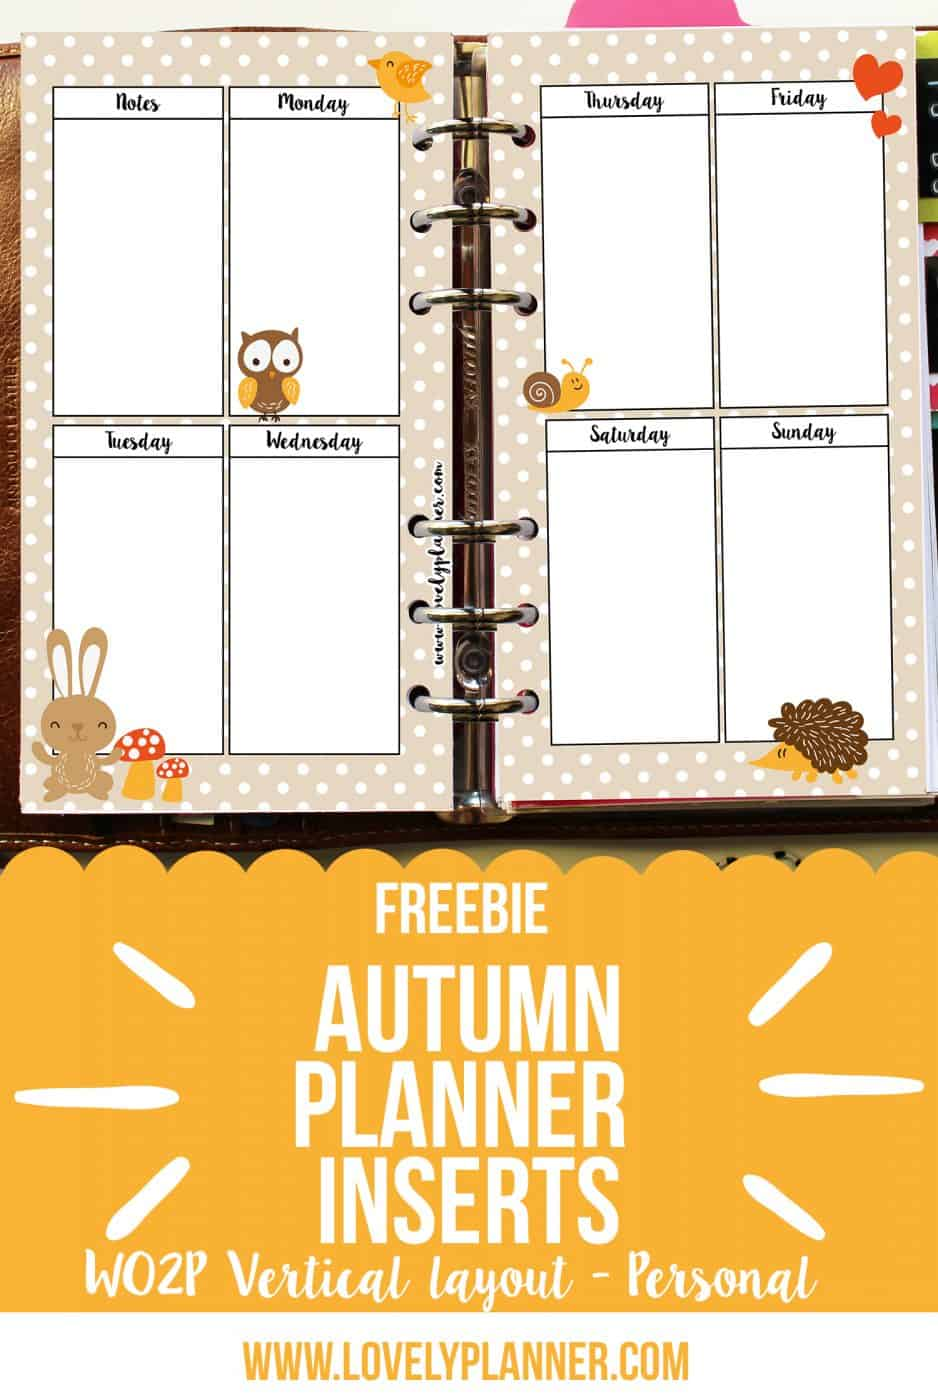 image about Printable Freebie called Freebie Autumn printable planner inserts - Attractive Planner